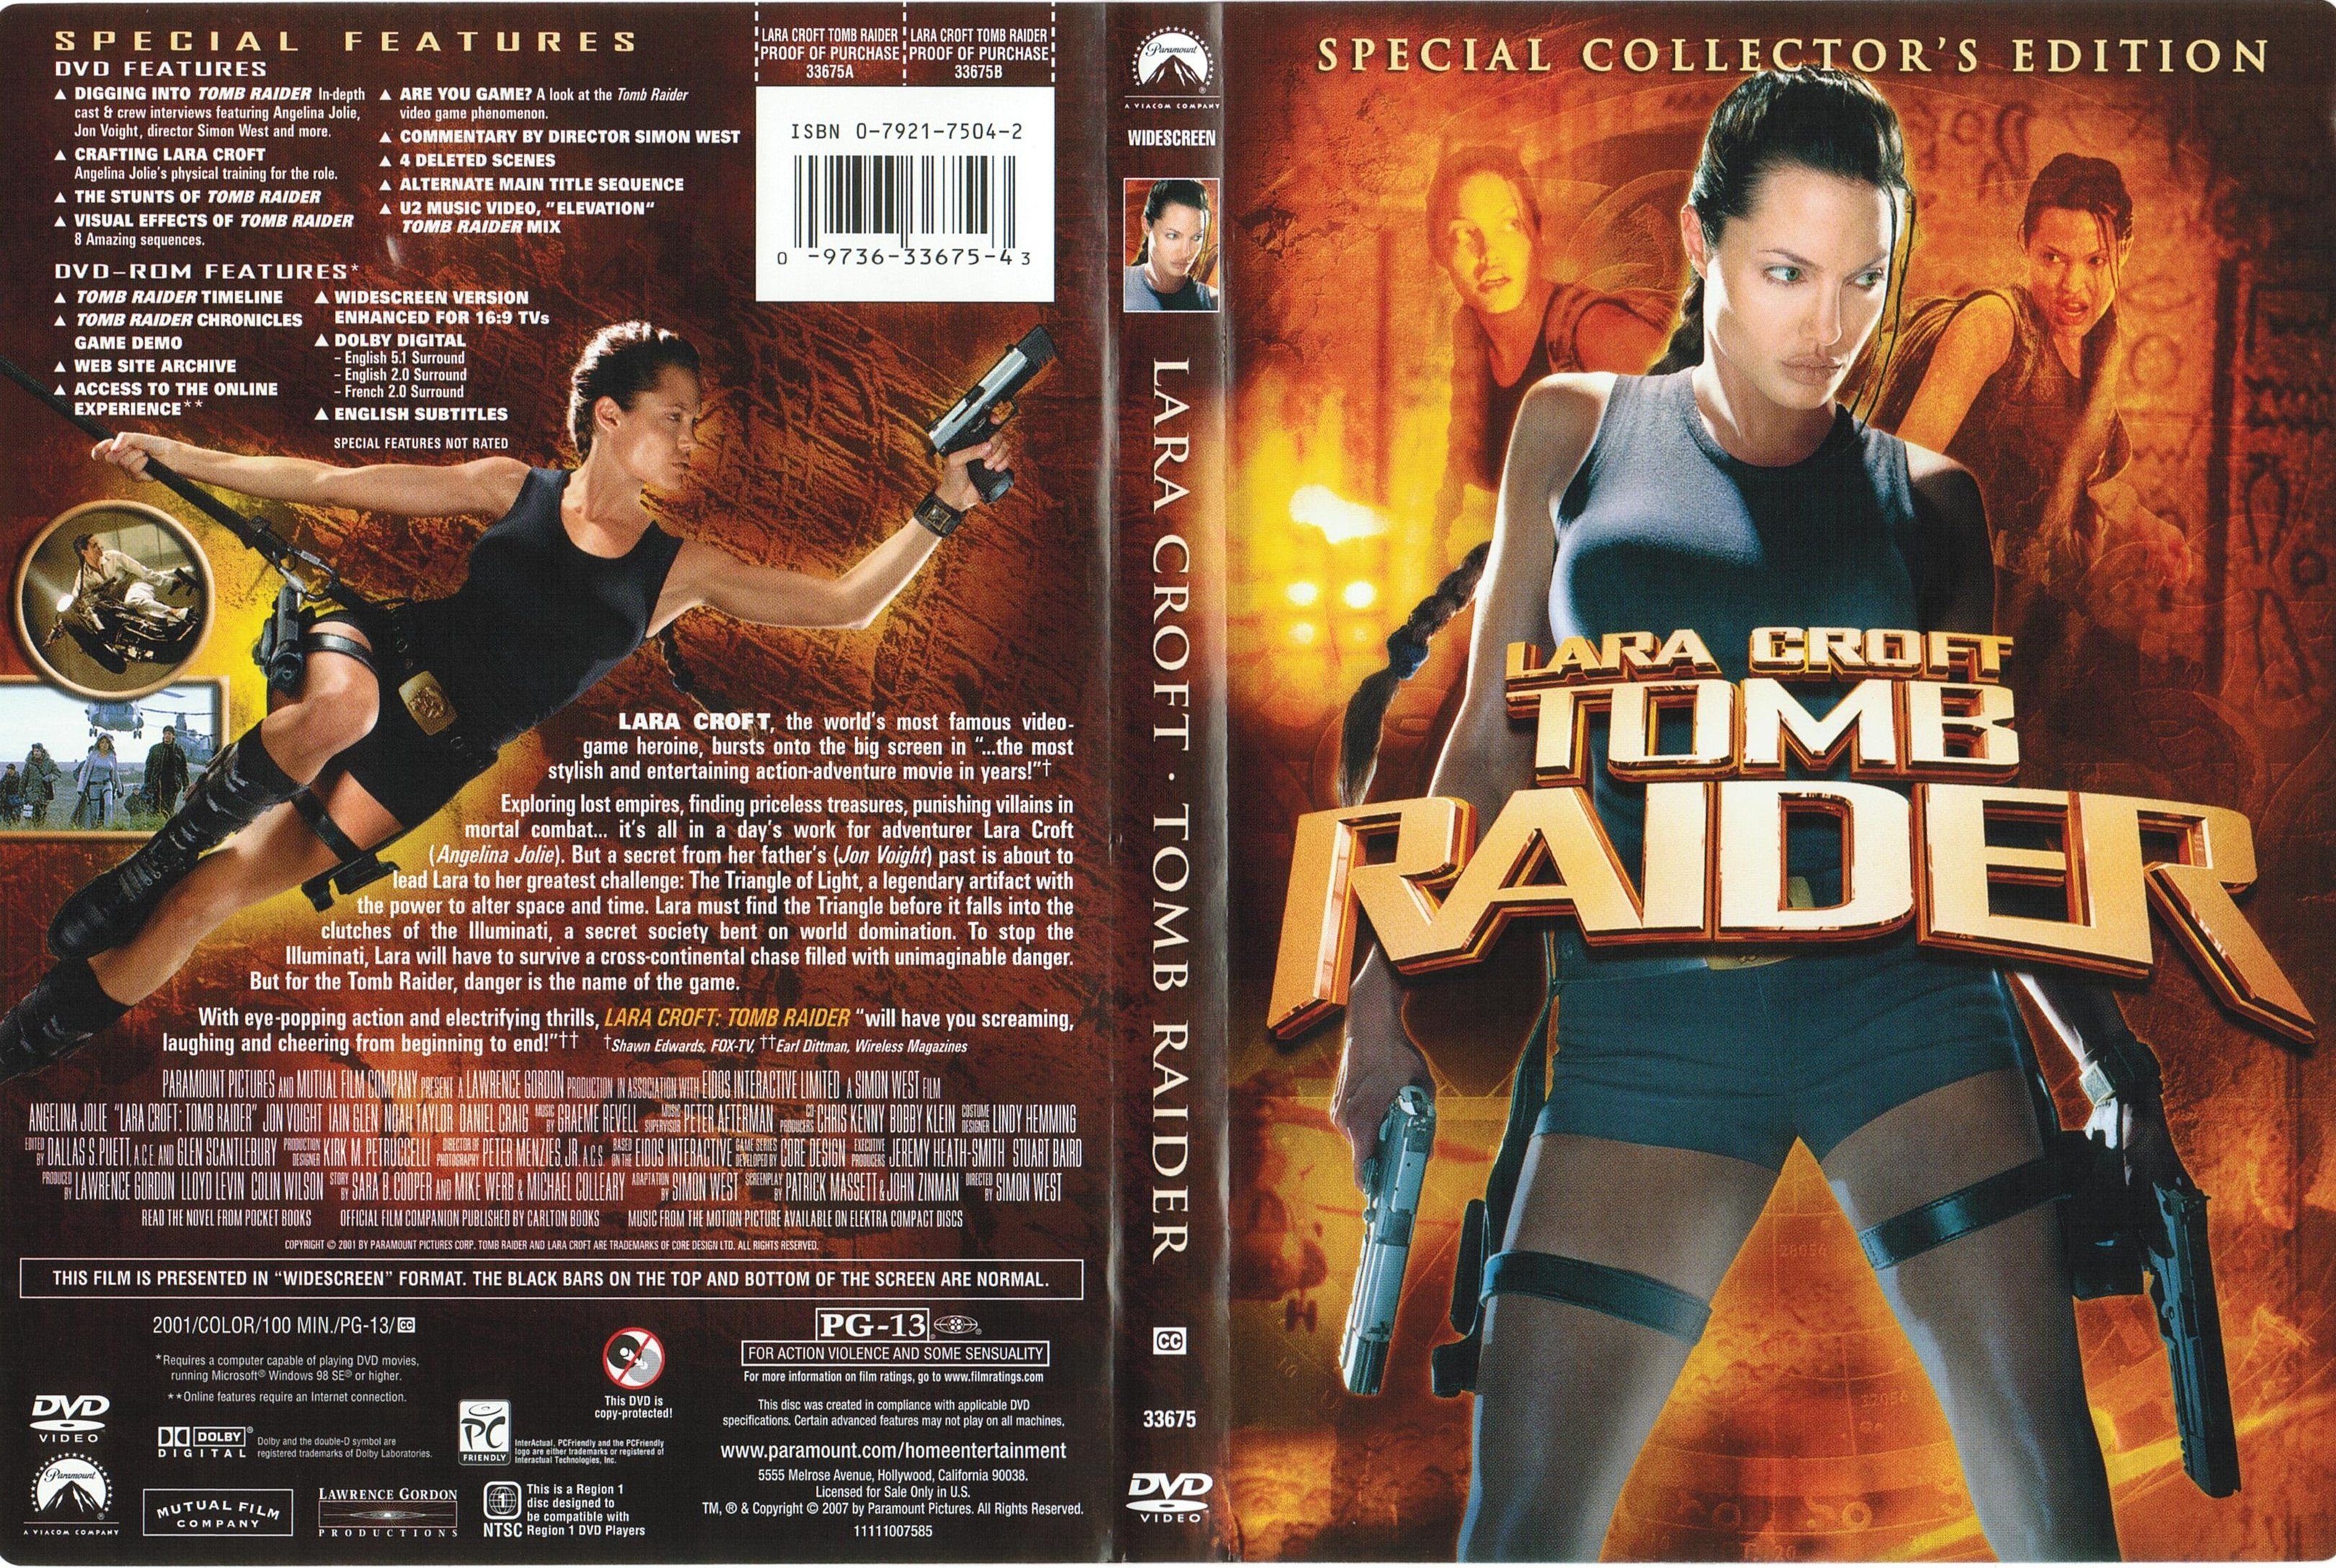 Covers Box Sk Lara Croft Tomb Raider 2001 High Quality Dvd